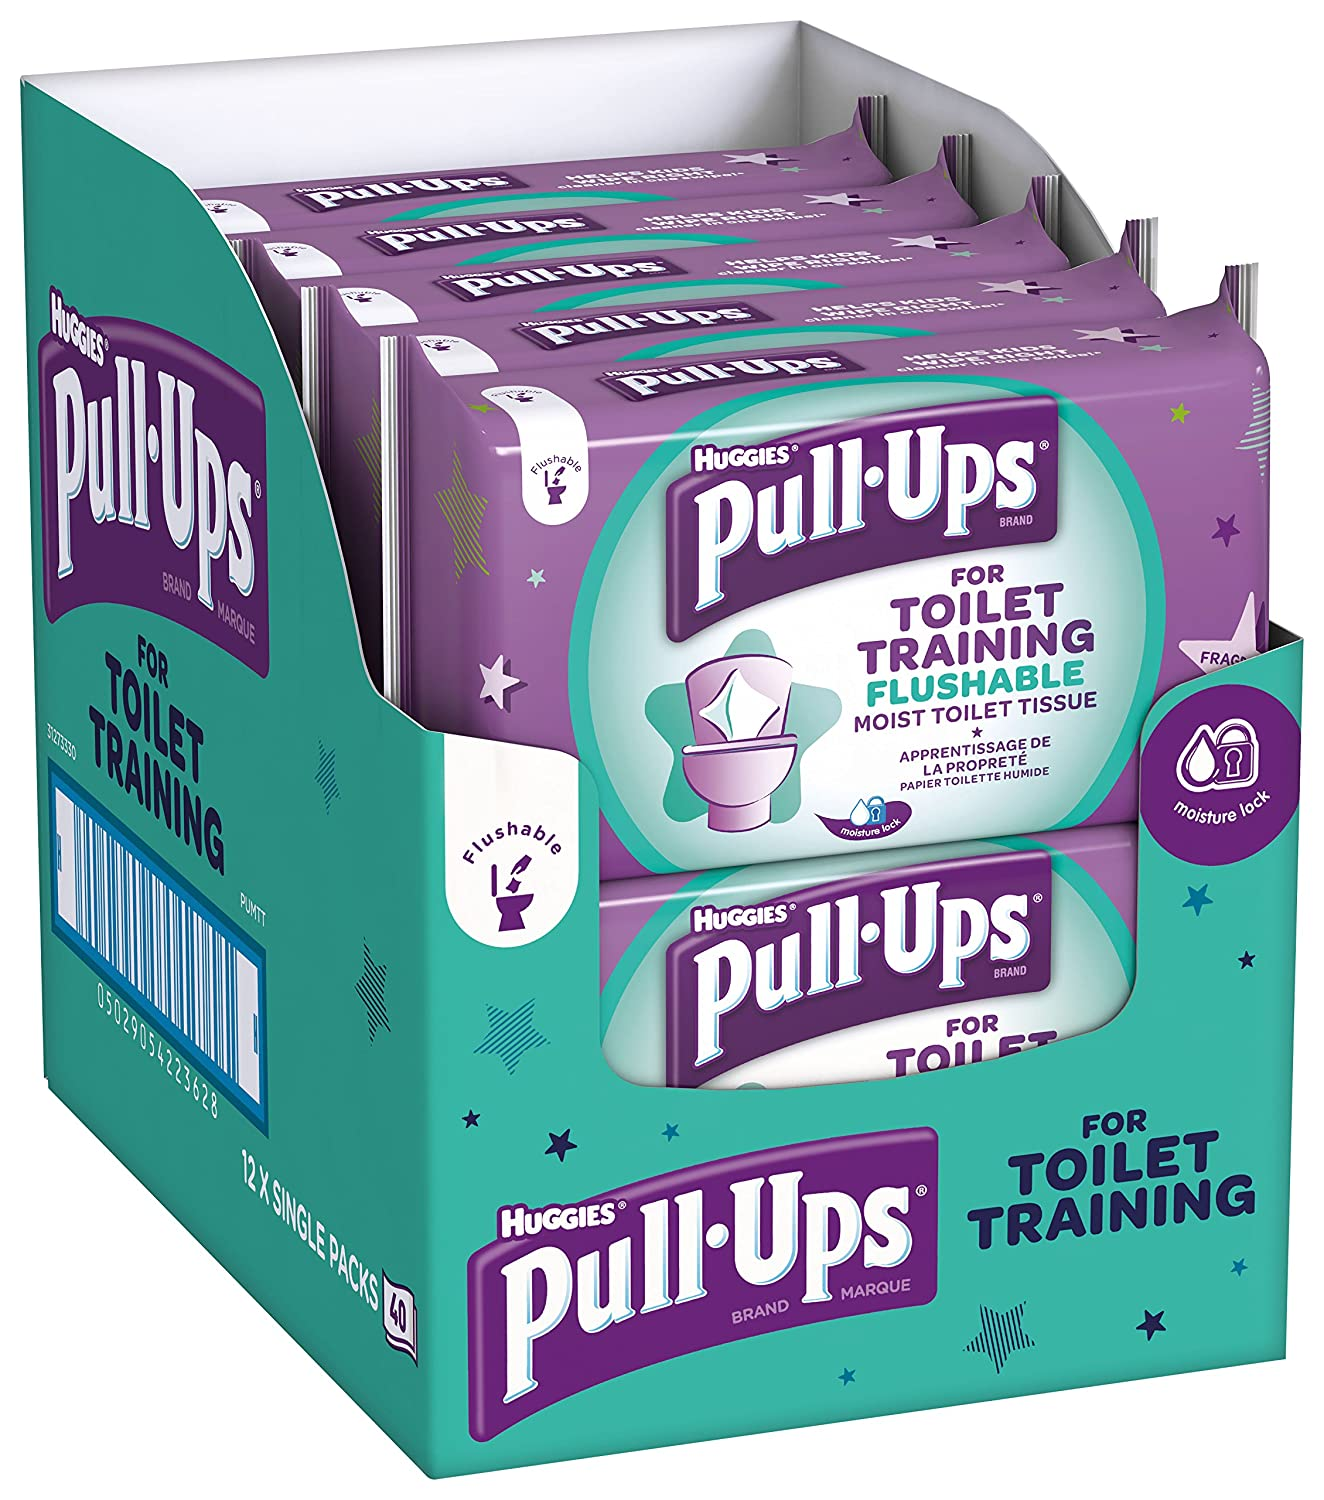 Huggies Pull Up 's WC-Training Feuchttücher, 12 Stück 12 Stück Kimberly Clark 4514798